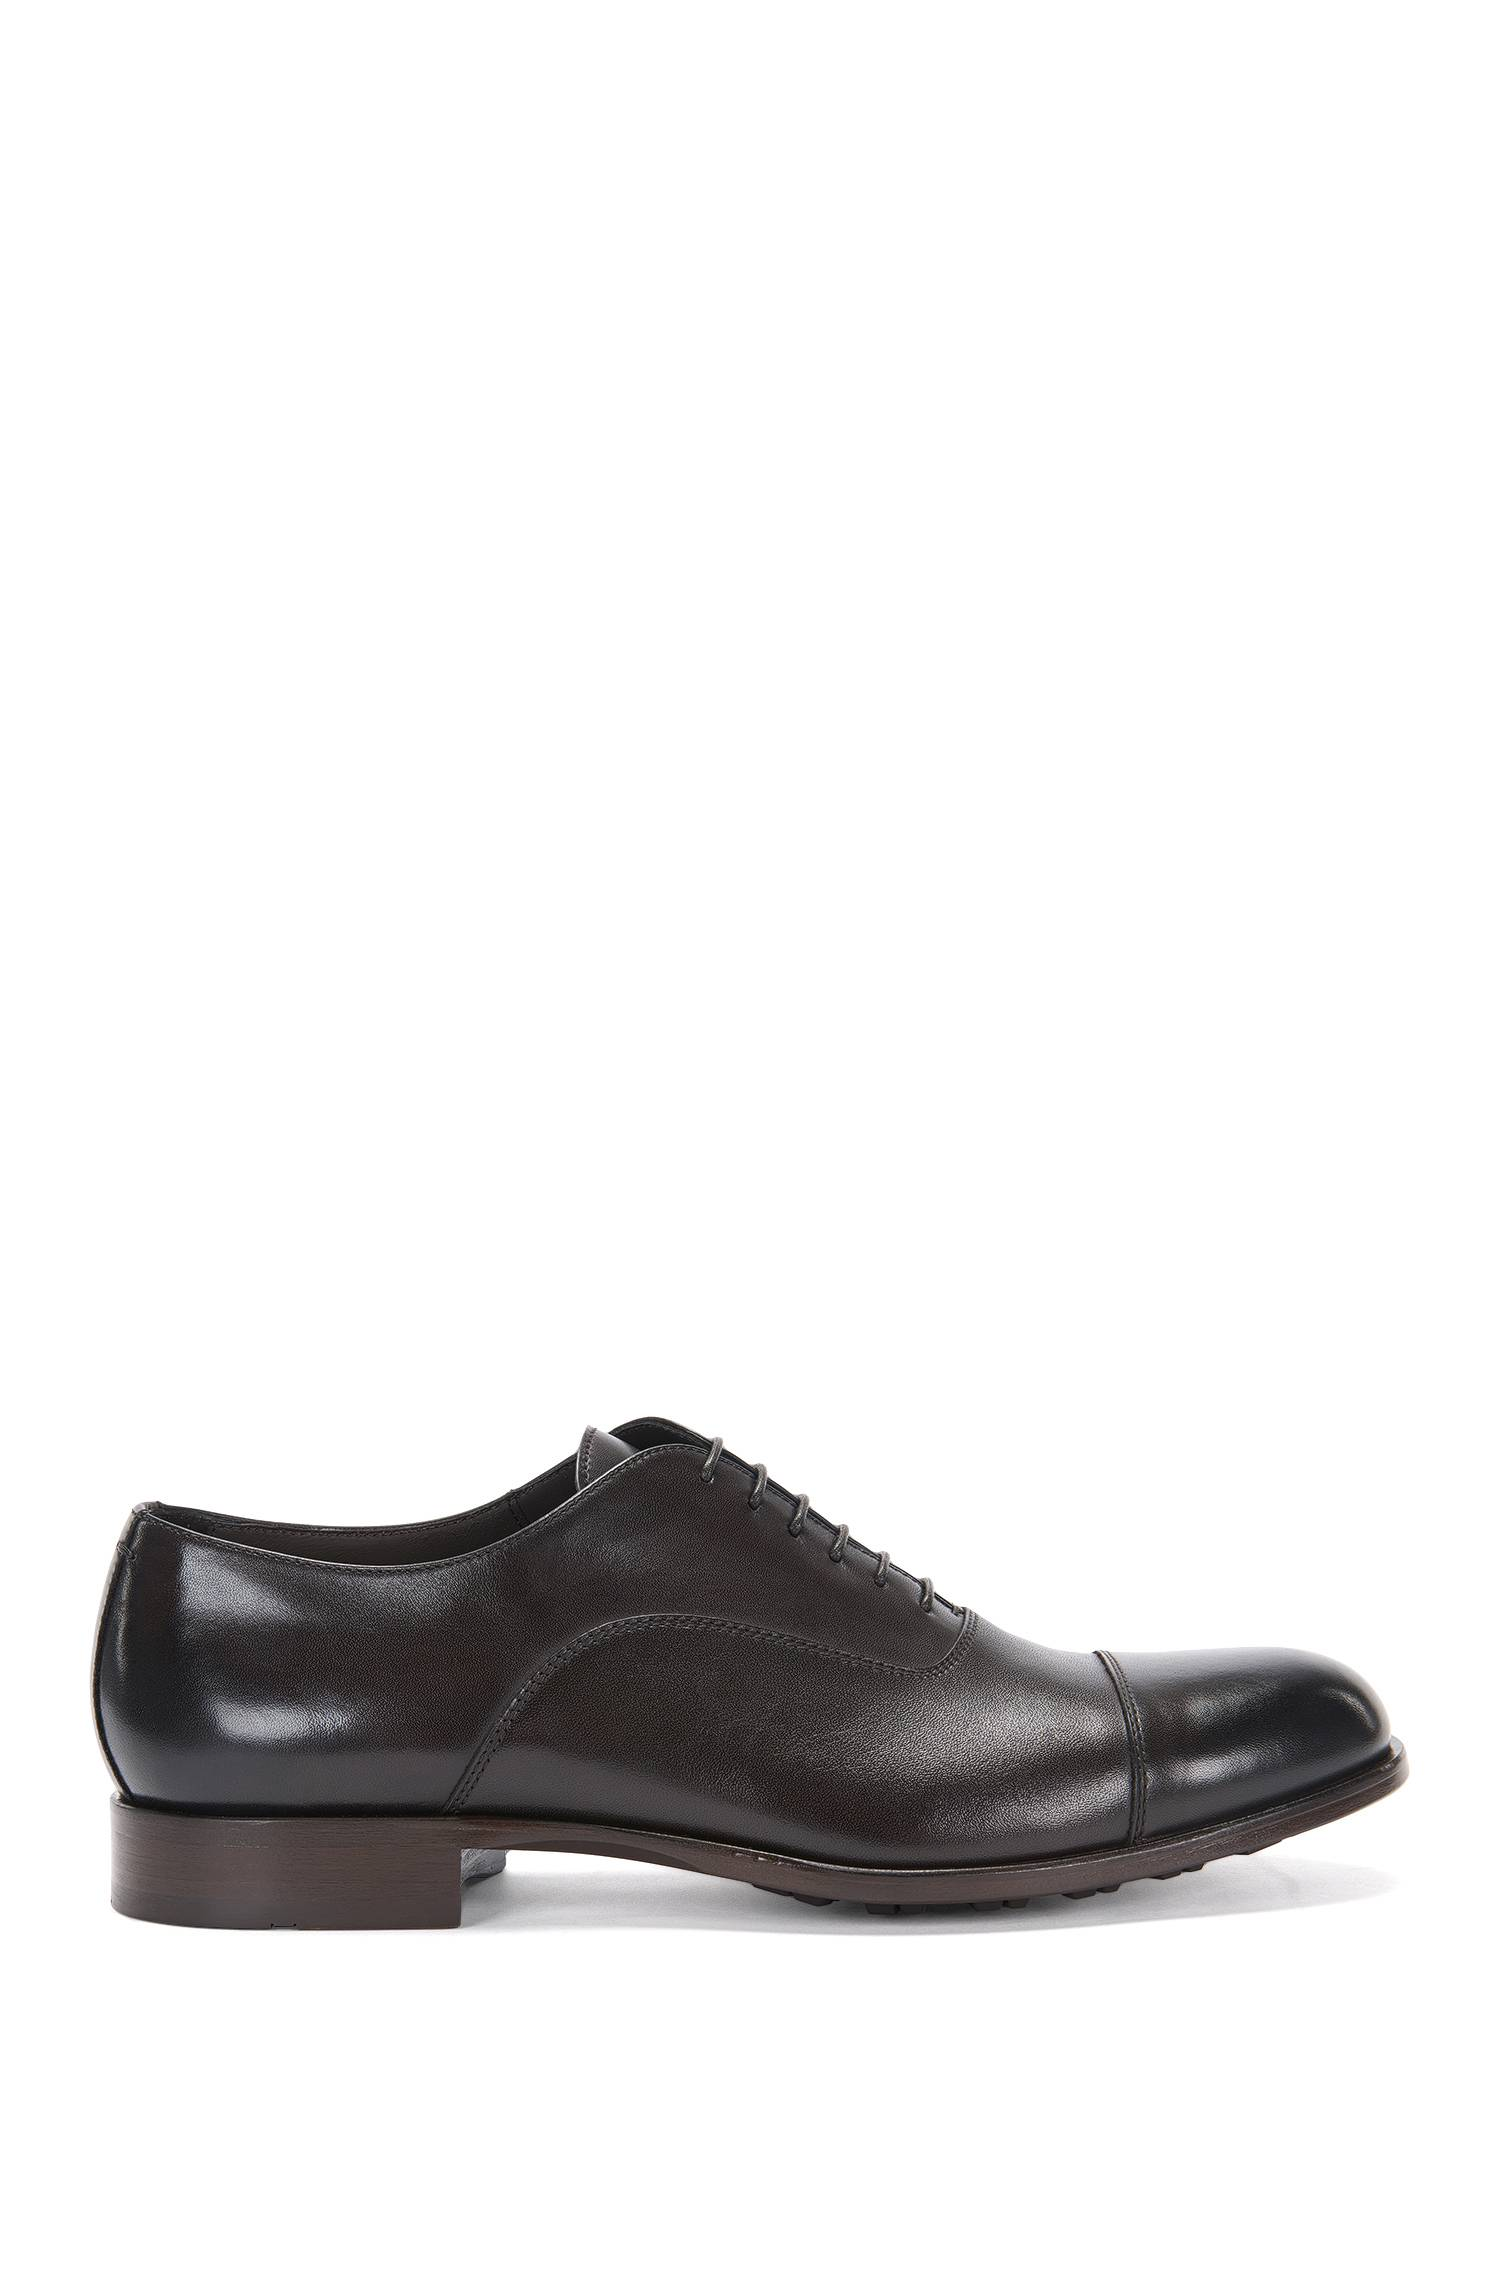 Leather laceup shoes with profiled sole `Monumental_Oxfr_ct`